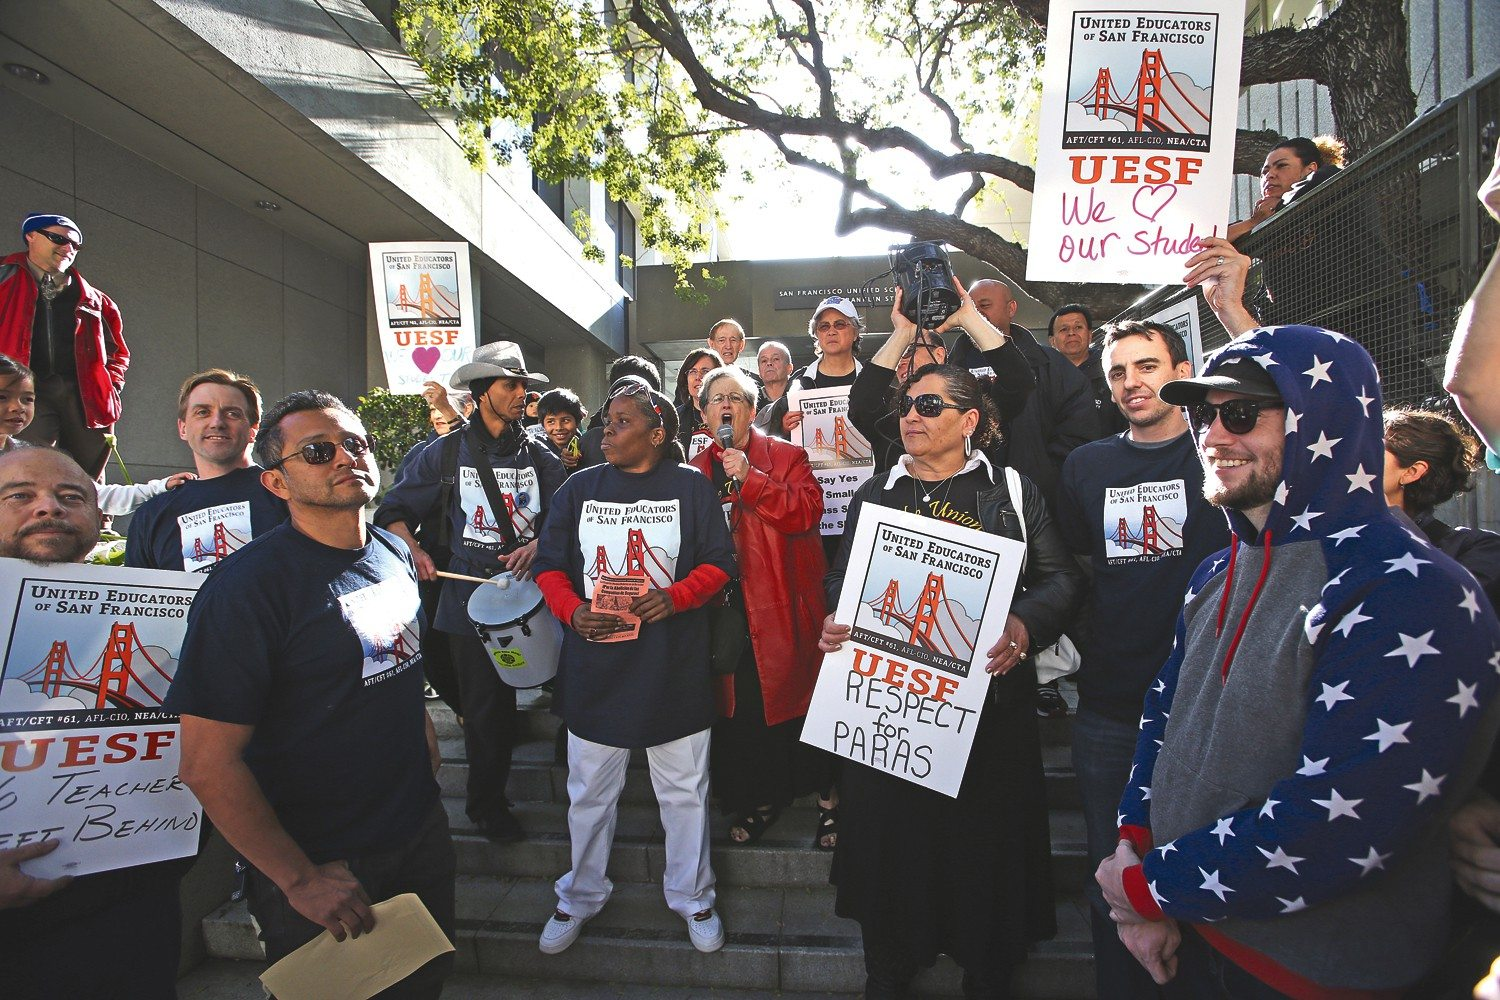 mike koozmin/S.f. Examiner file photoSFUSD teachers rallied outside of the SFUSD administrative building on April 22